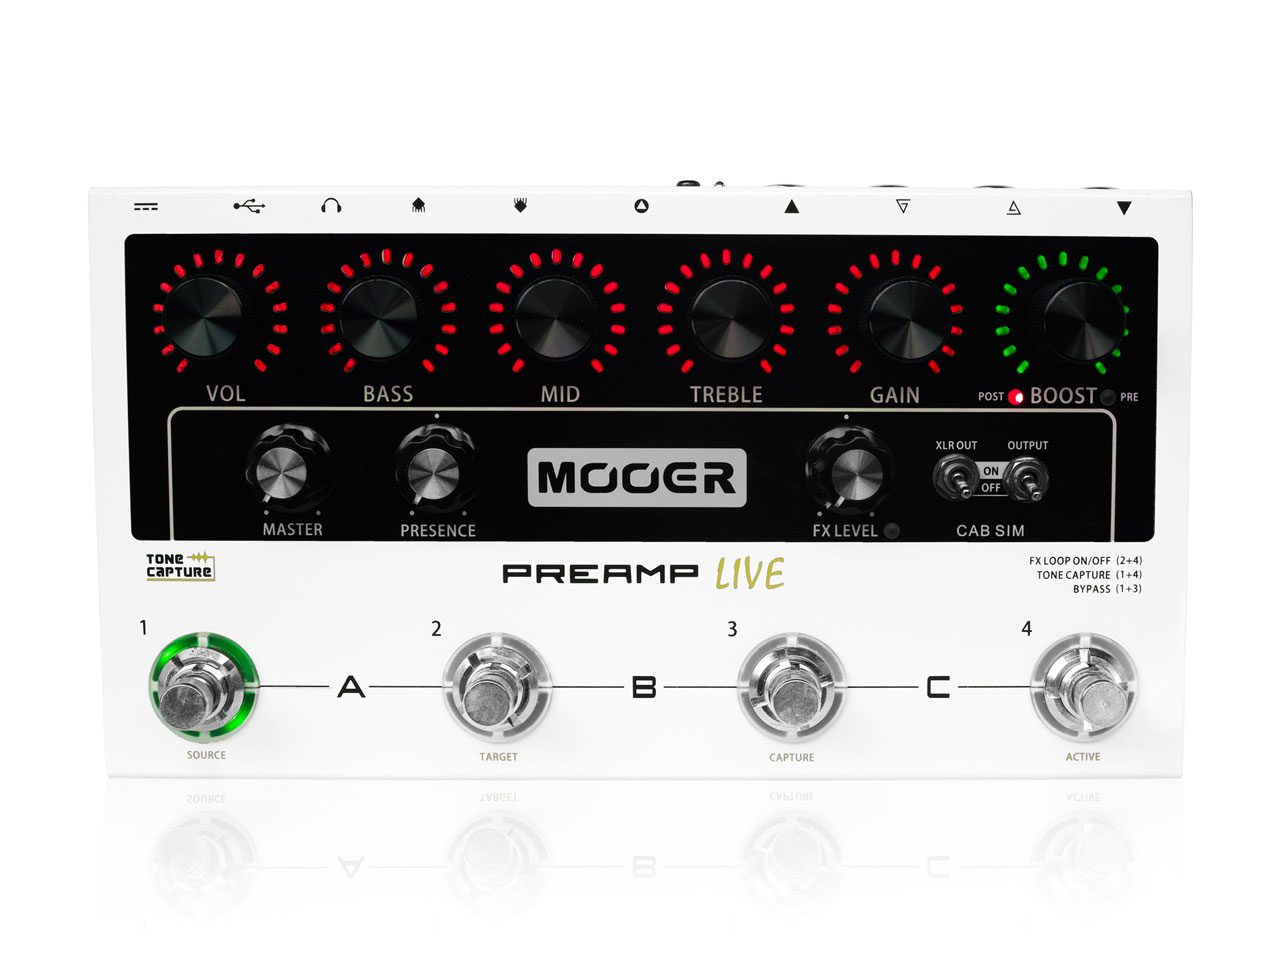 Mooer(ムーア) Preamp Live (プリアンプ)